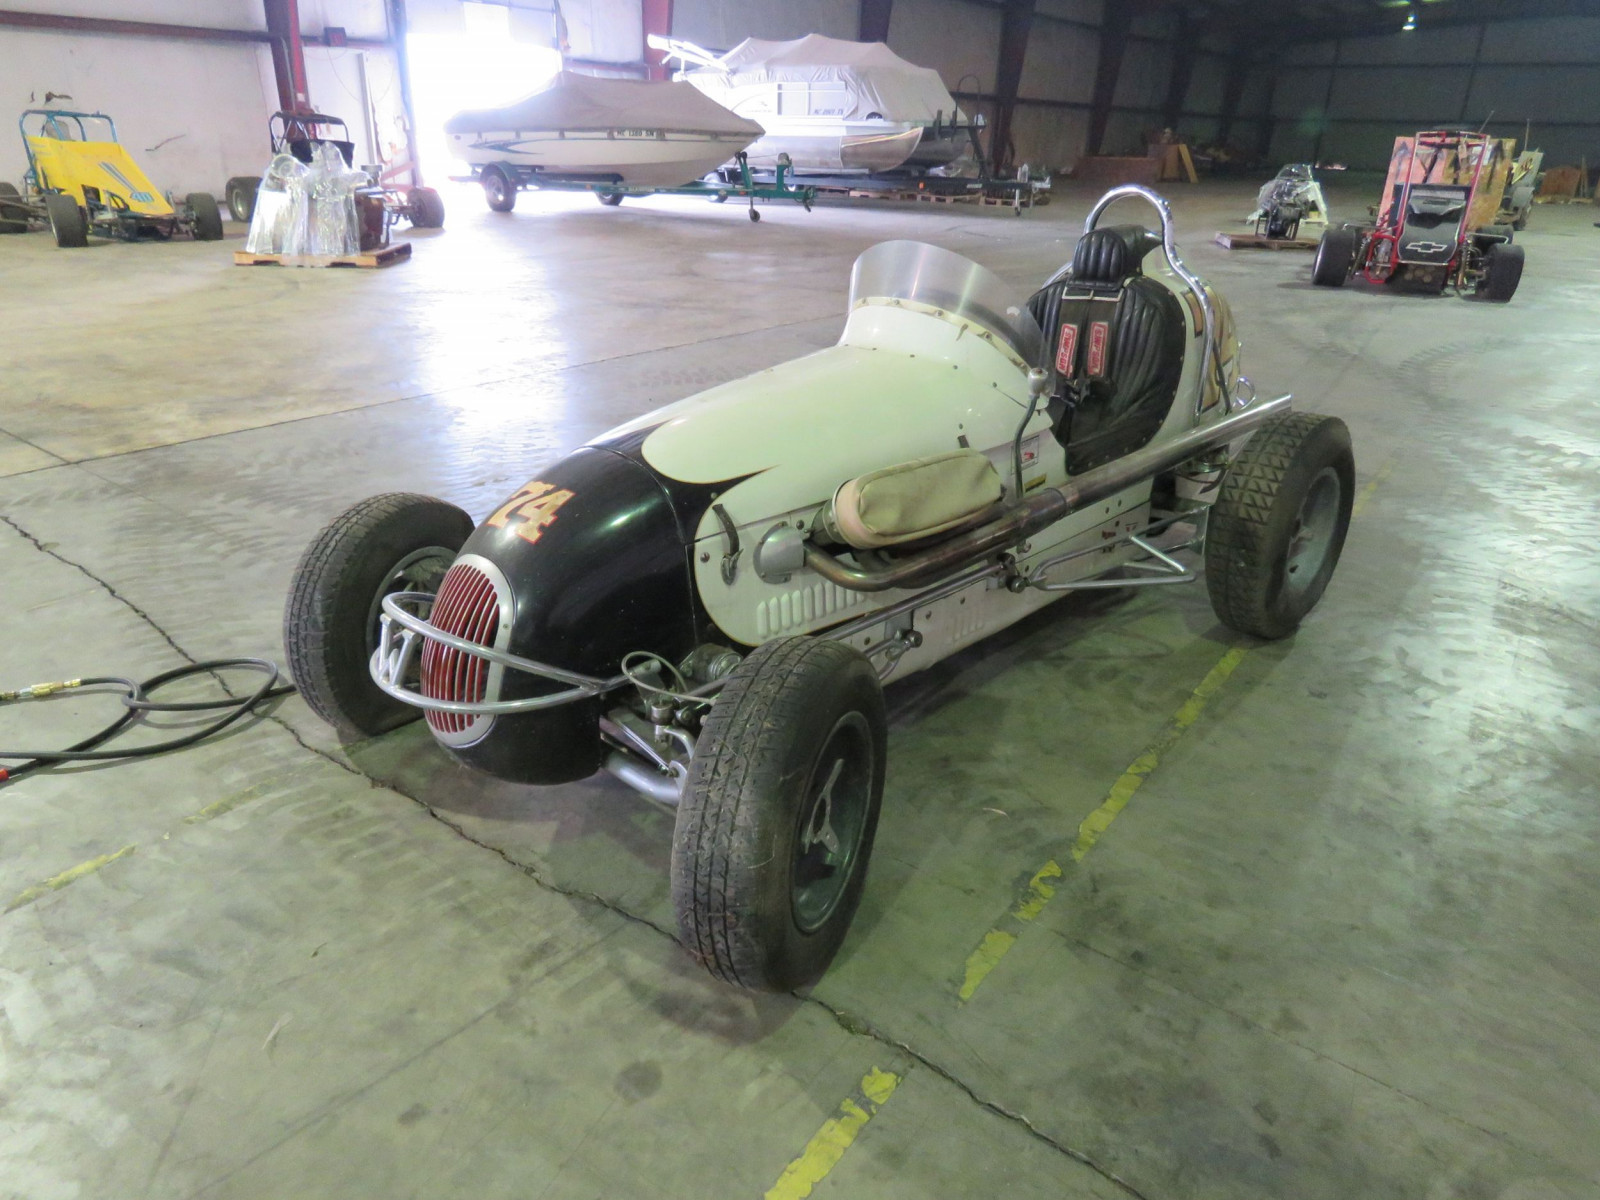 Rare 1947 Kurtis Kraft-Chimnery Midget Racecar and Trailer - Image 2